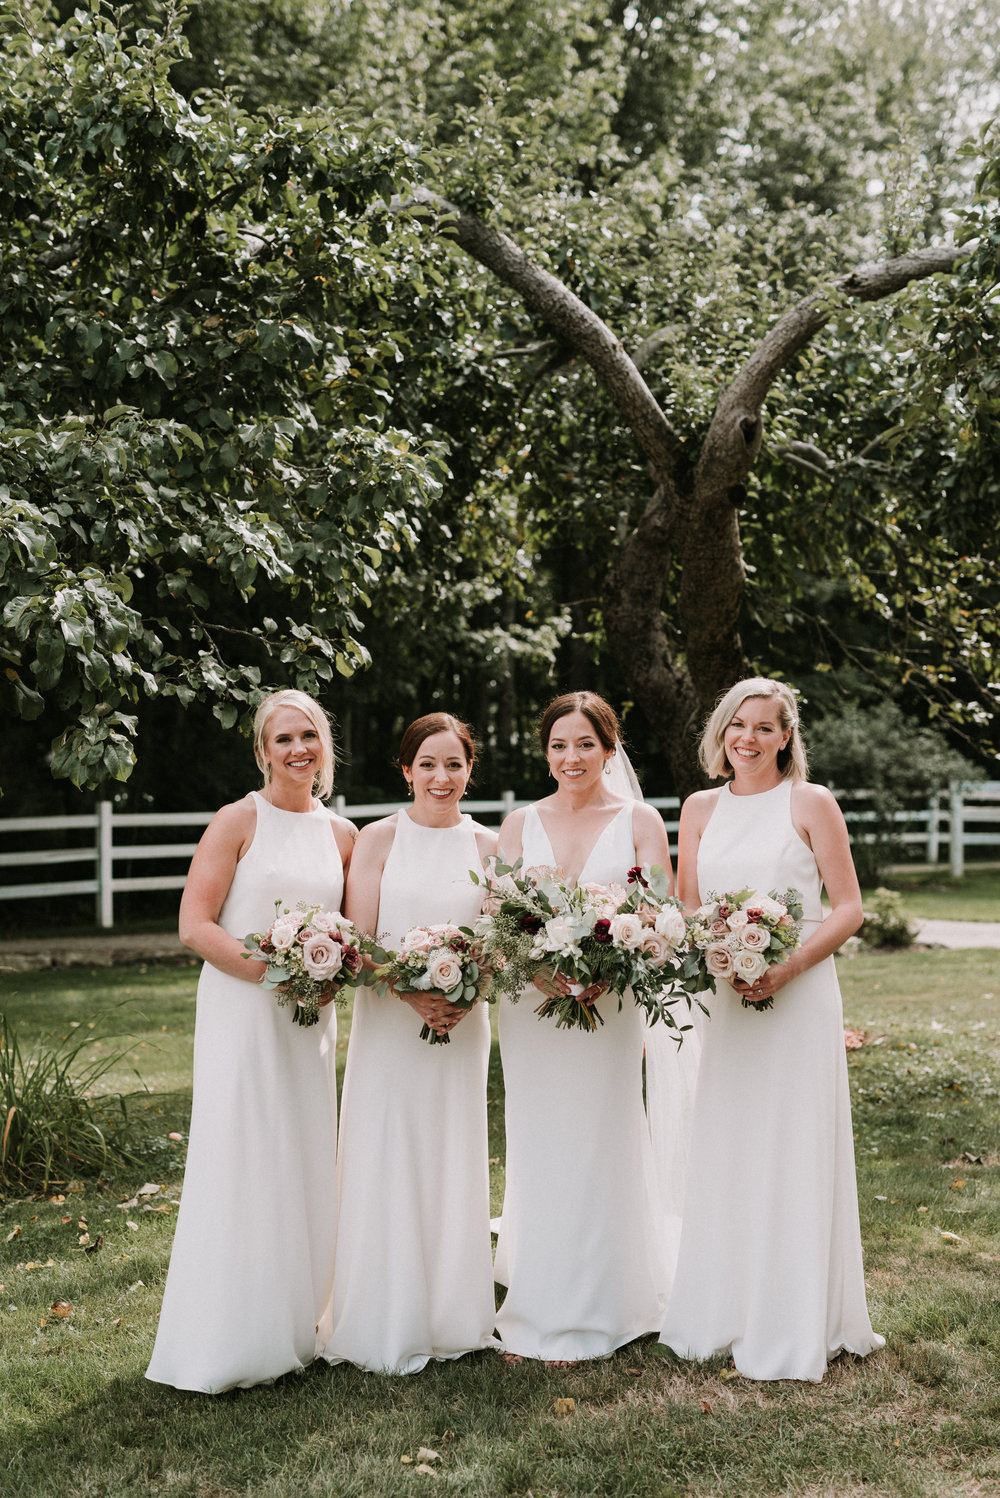 We loved that the Bridesmaids and Bride all wore shades of white.